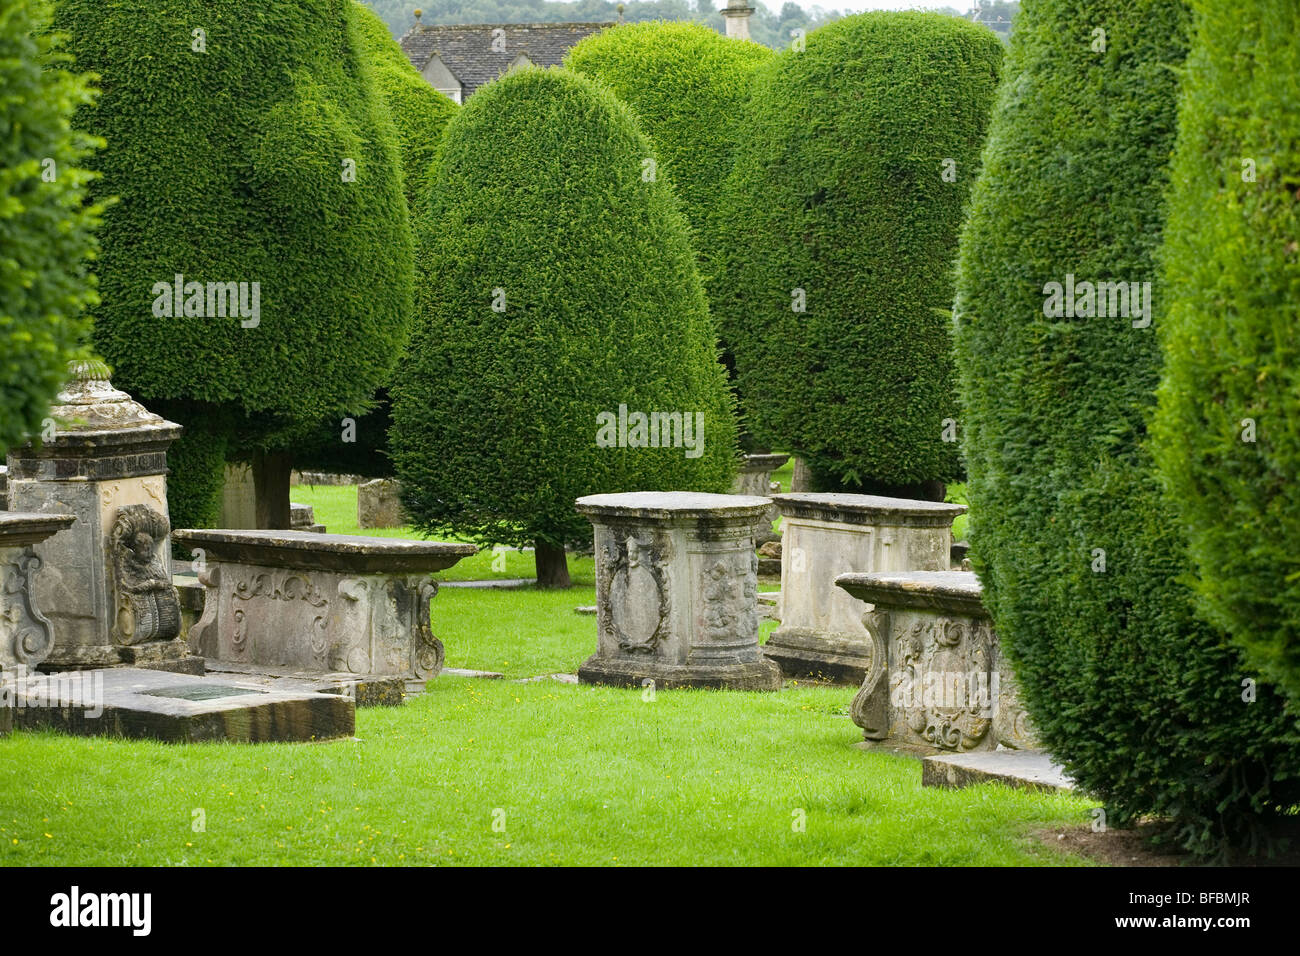 Tombs and yew trees in churchyard of St Mary's Church Painswick England - Stock Image